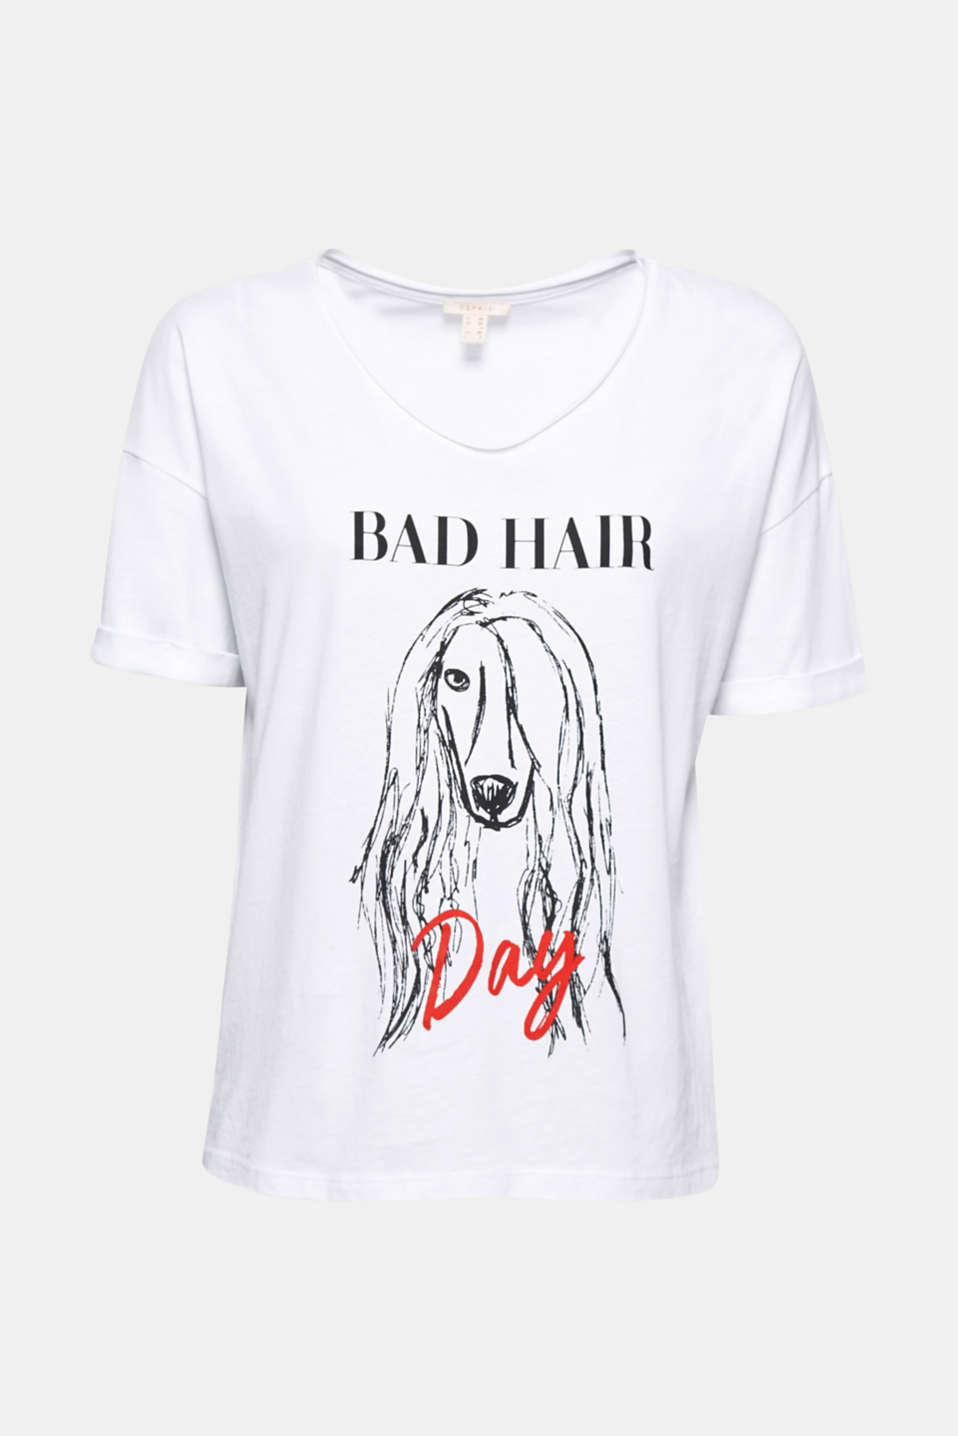 Gives you and your mates something to chuckle about: silky t-shirt with an original, Bad Hair Day print!